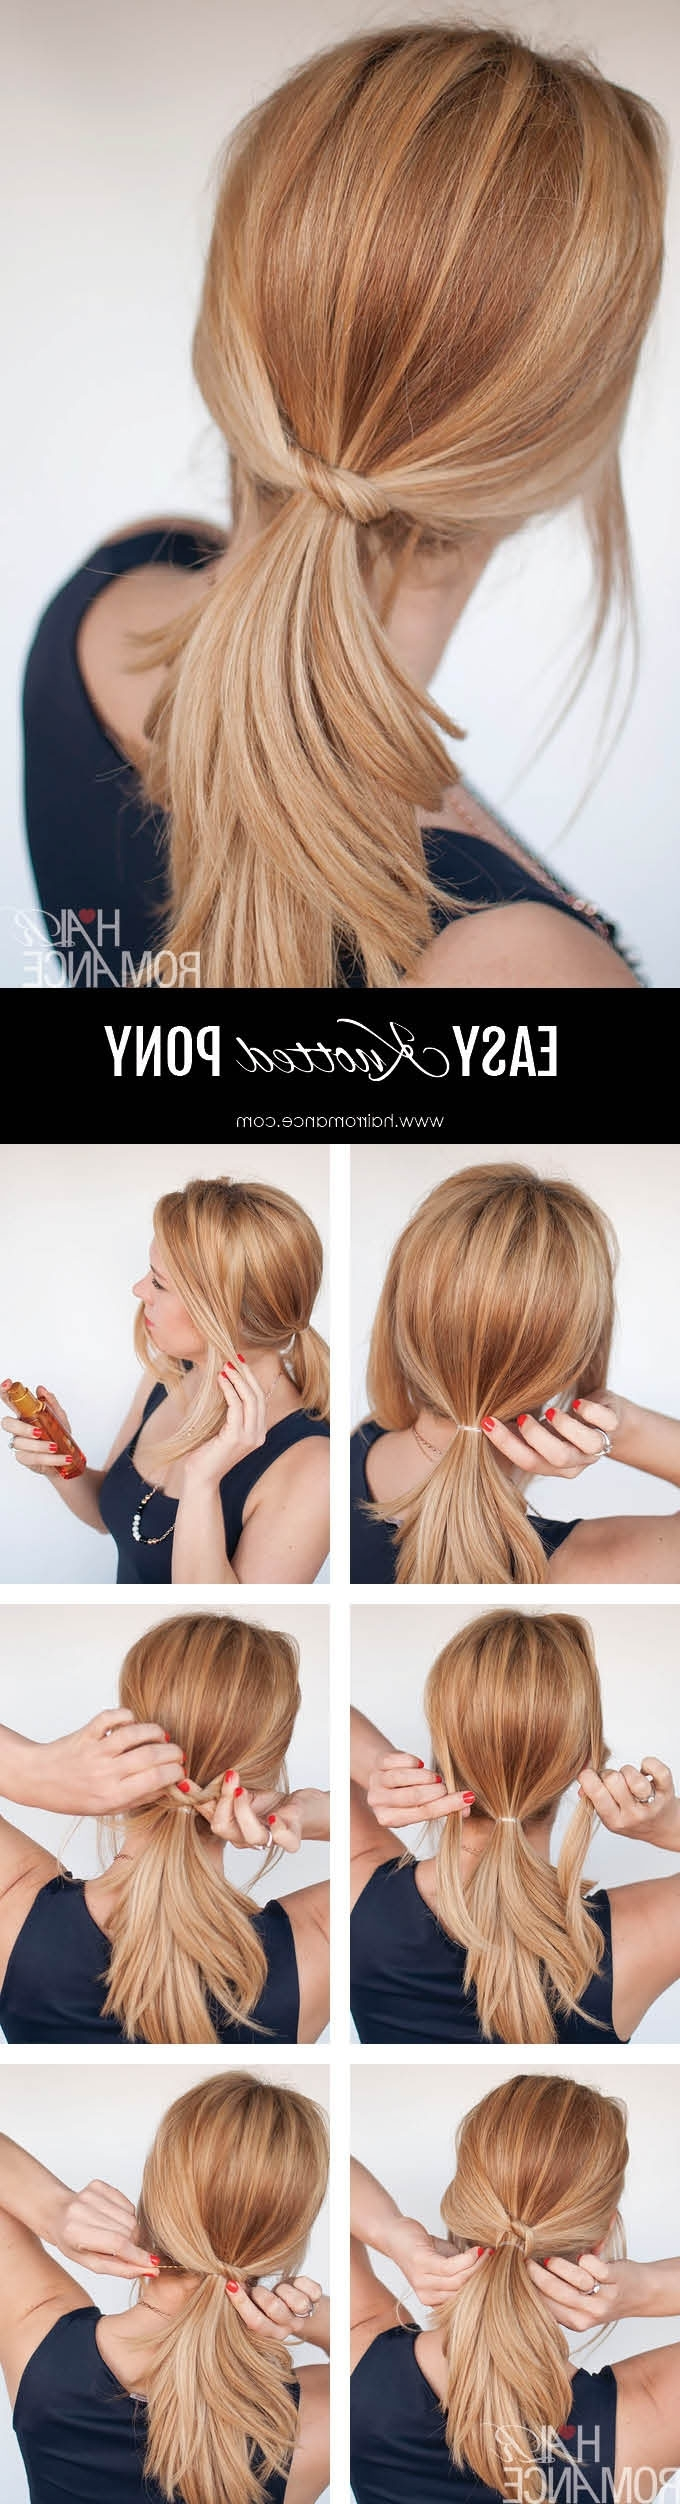 Trendy Knotted Ponytail Hairstyles For 3 Chic Ponytail Tutorials To Lift Your Everyday Hair Game – Hair Romance (View 16 of 20)